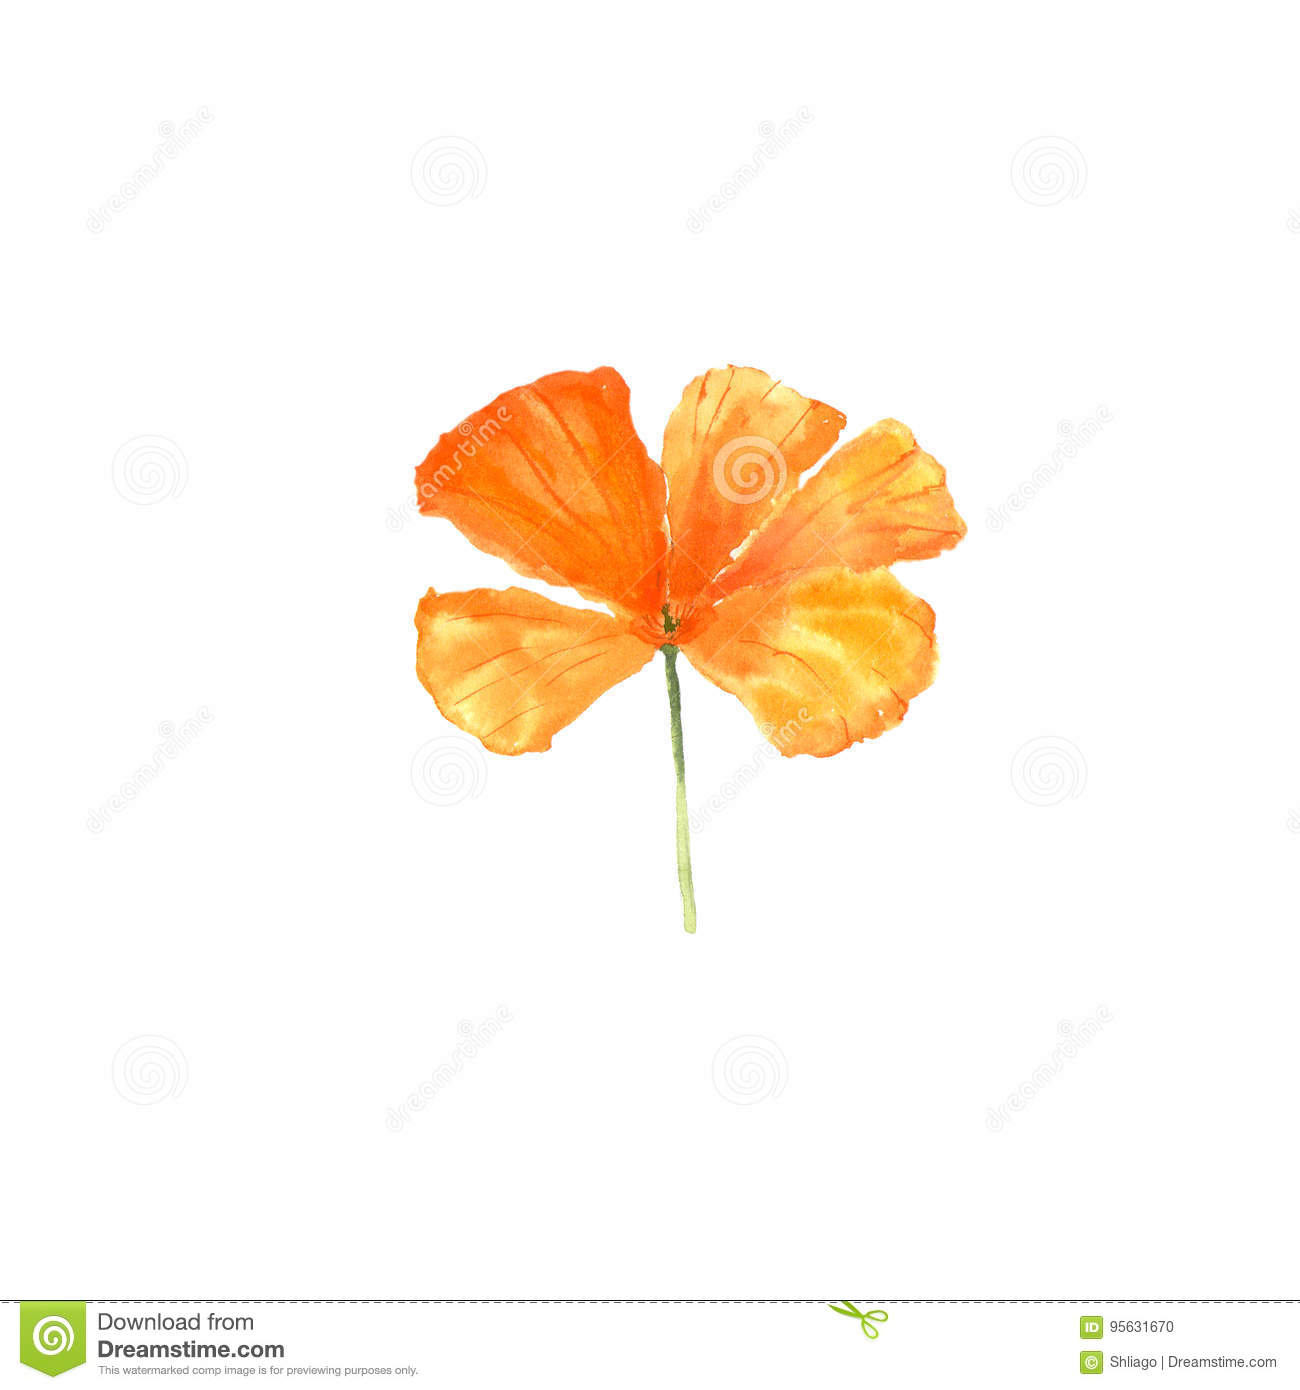 Download Watercolor Botanical Illustration Of California Poppy Flower Isolated On White Background Stock